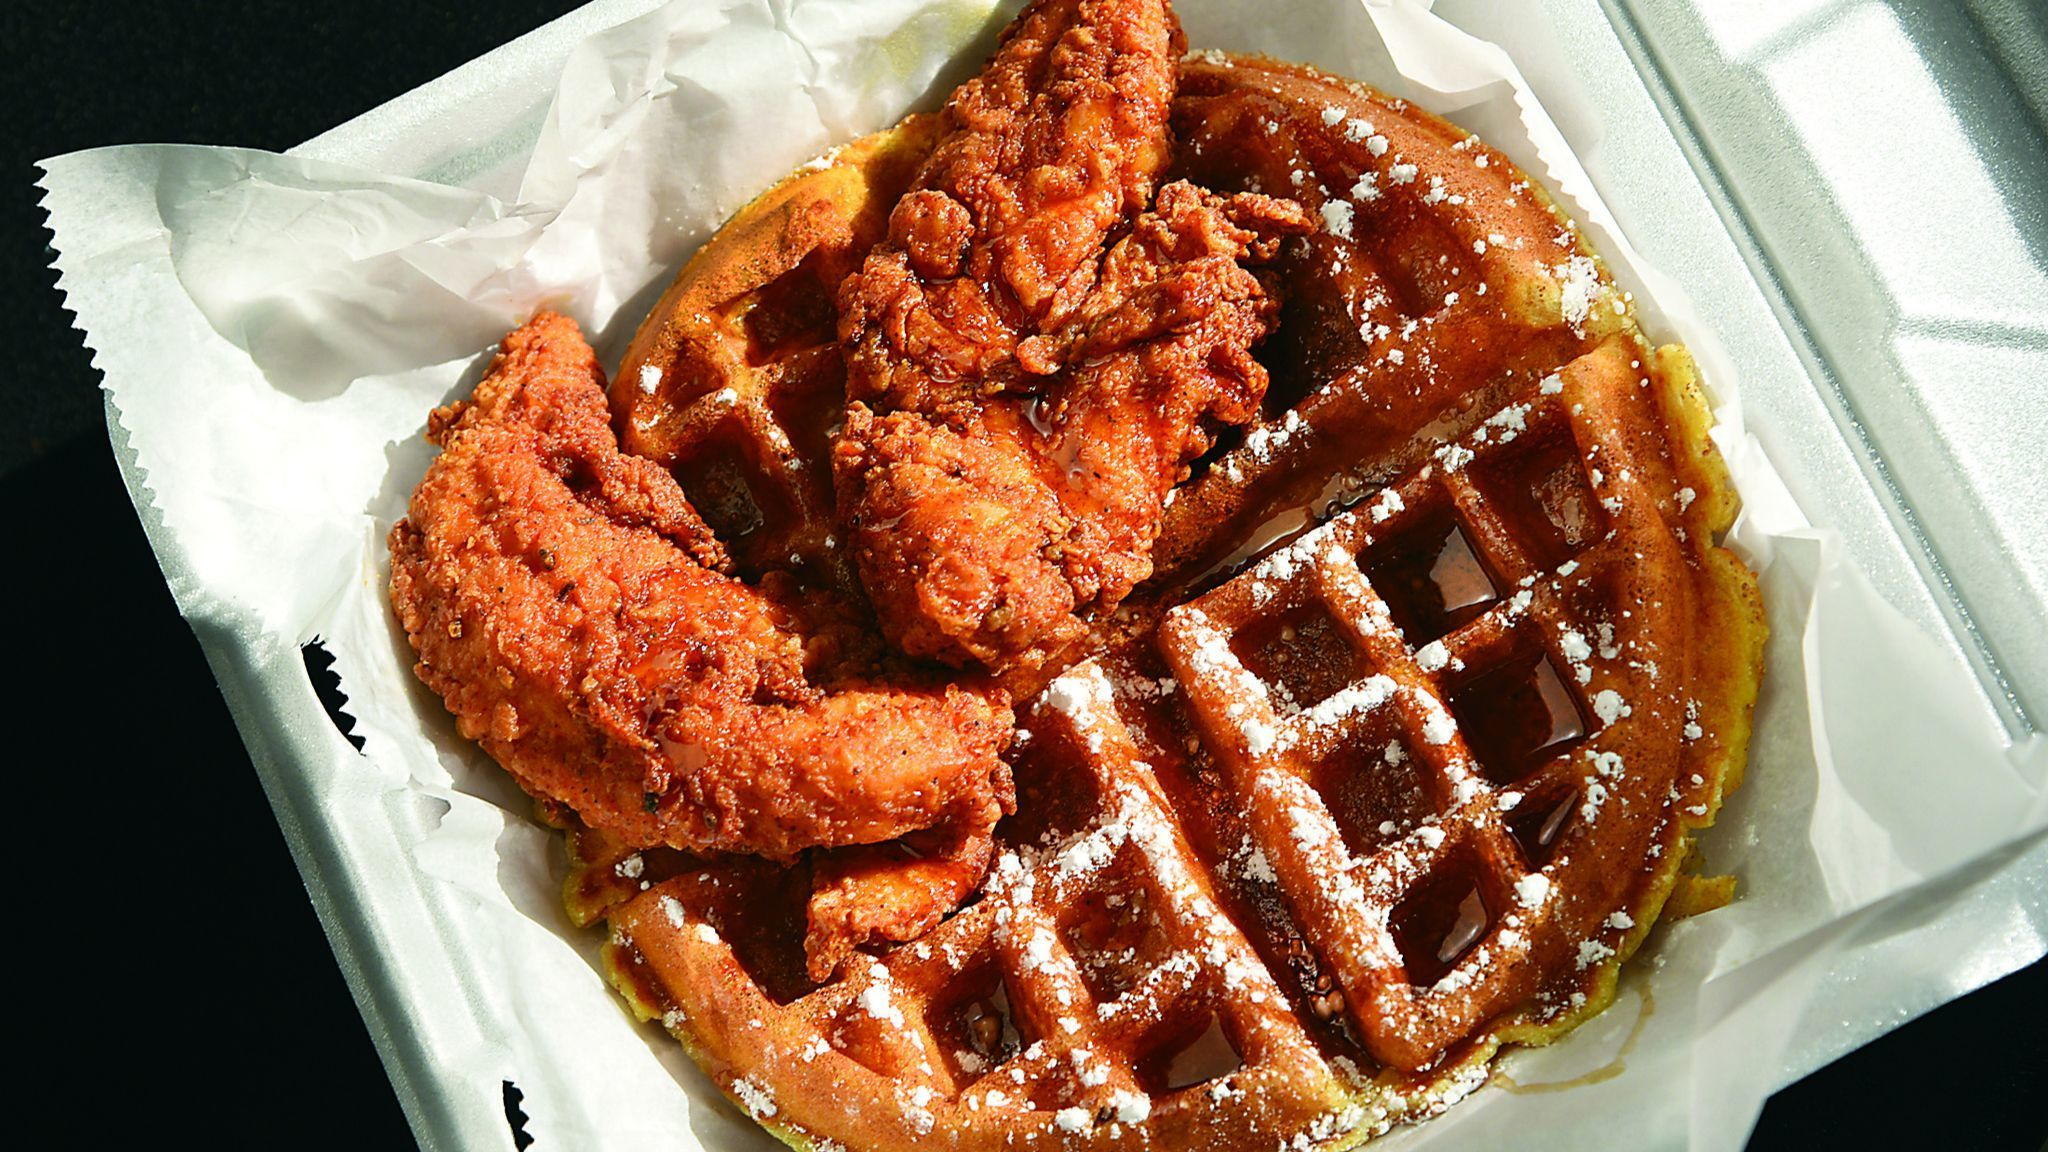 Baltimore, MD-1/9/17 - The #1 special, a buttermilk waffle with chicken tenders, is the most popular